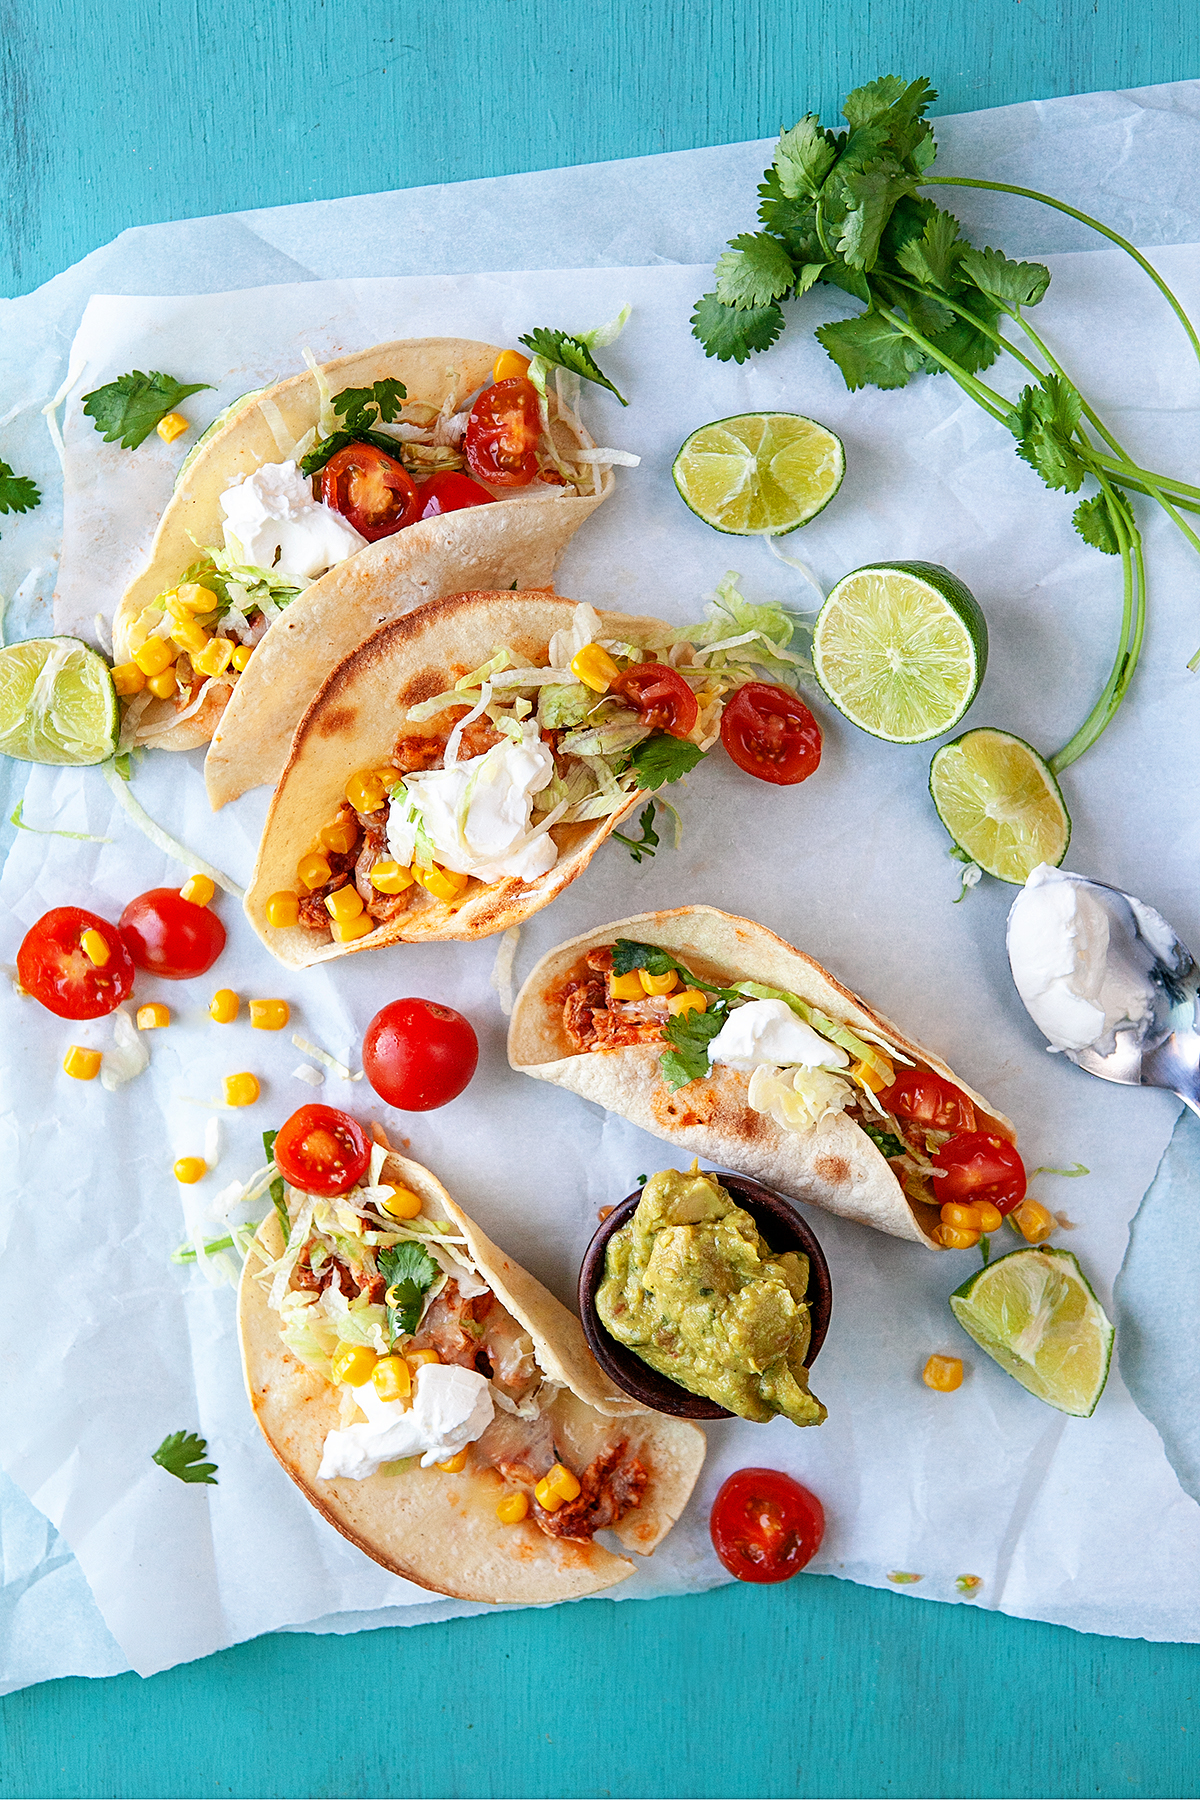 Overhead of tacos and toppings on parchment